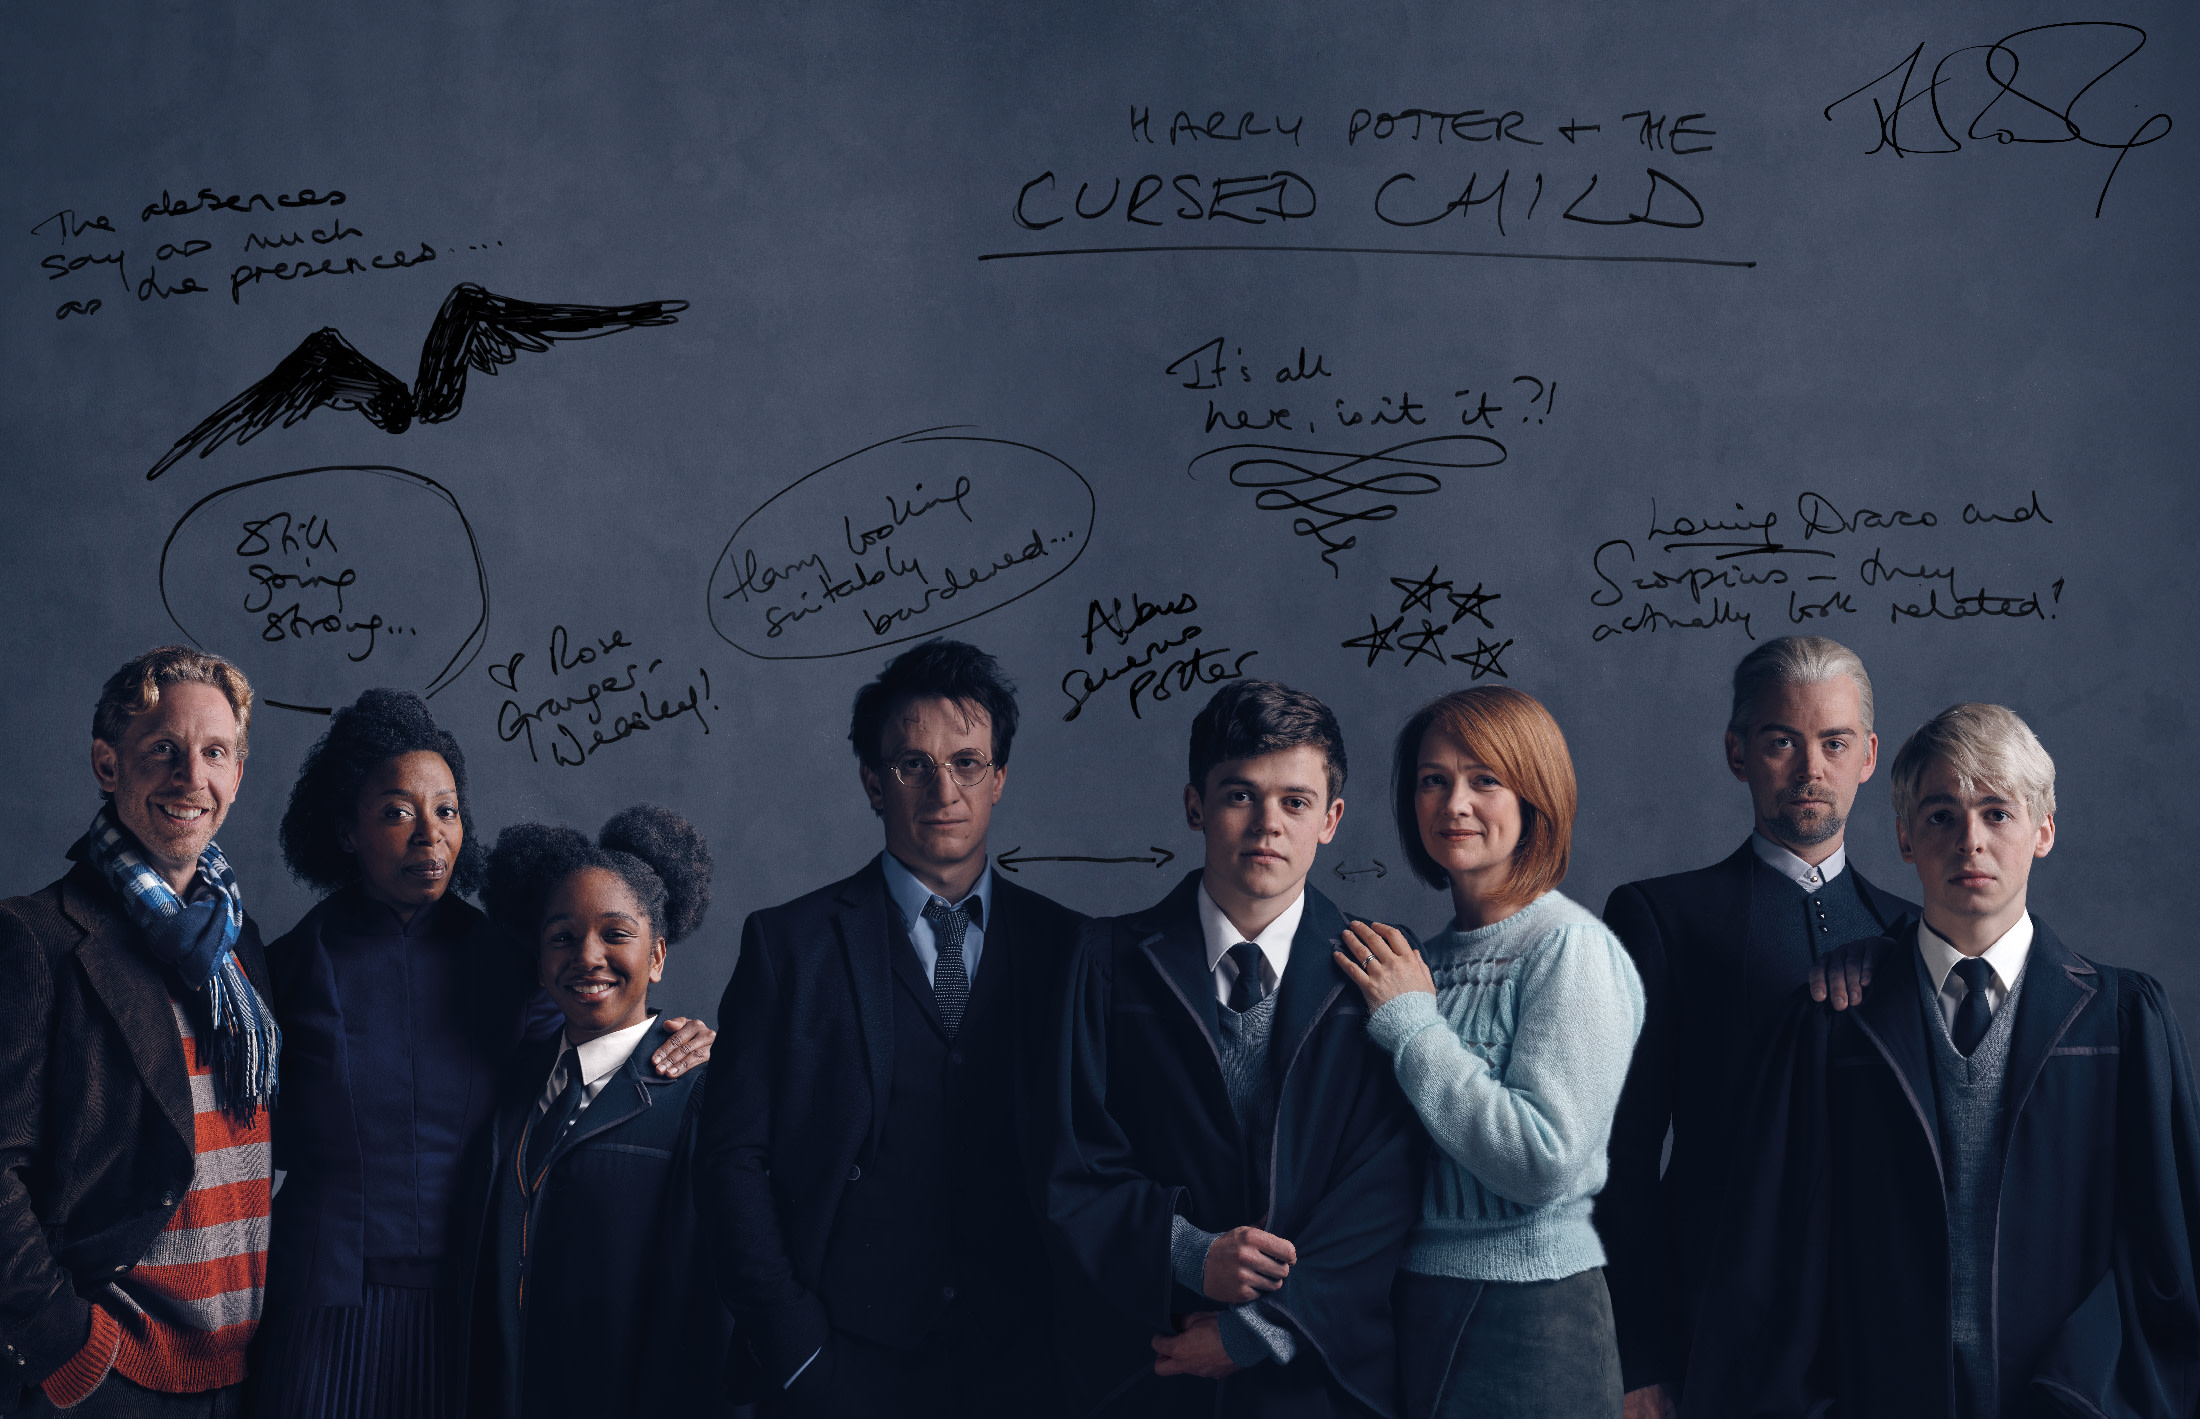 CC Cast JKR Writing image